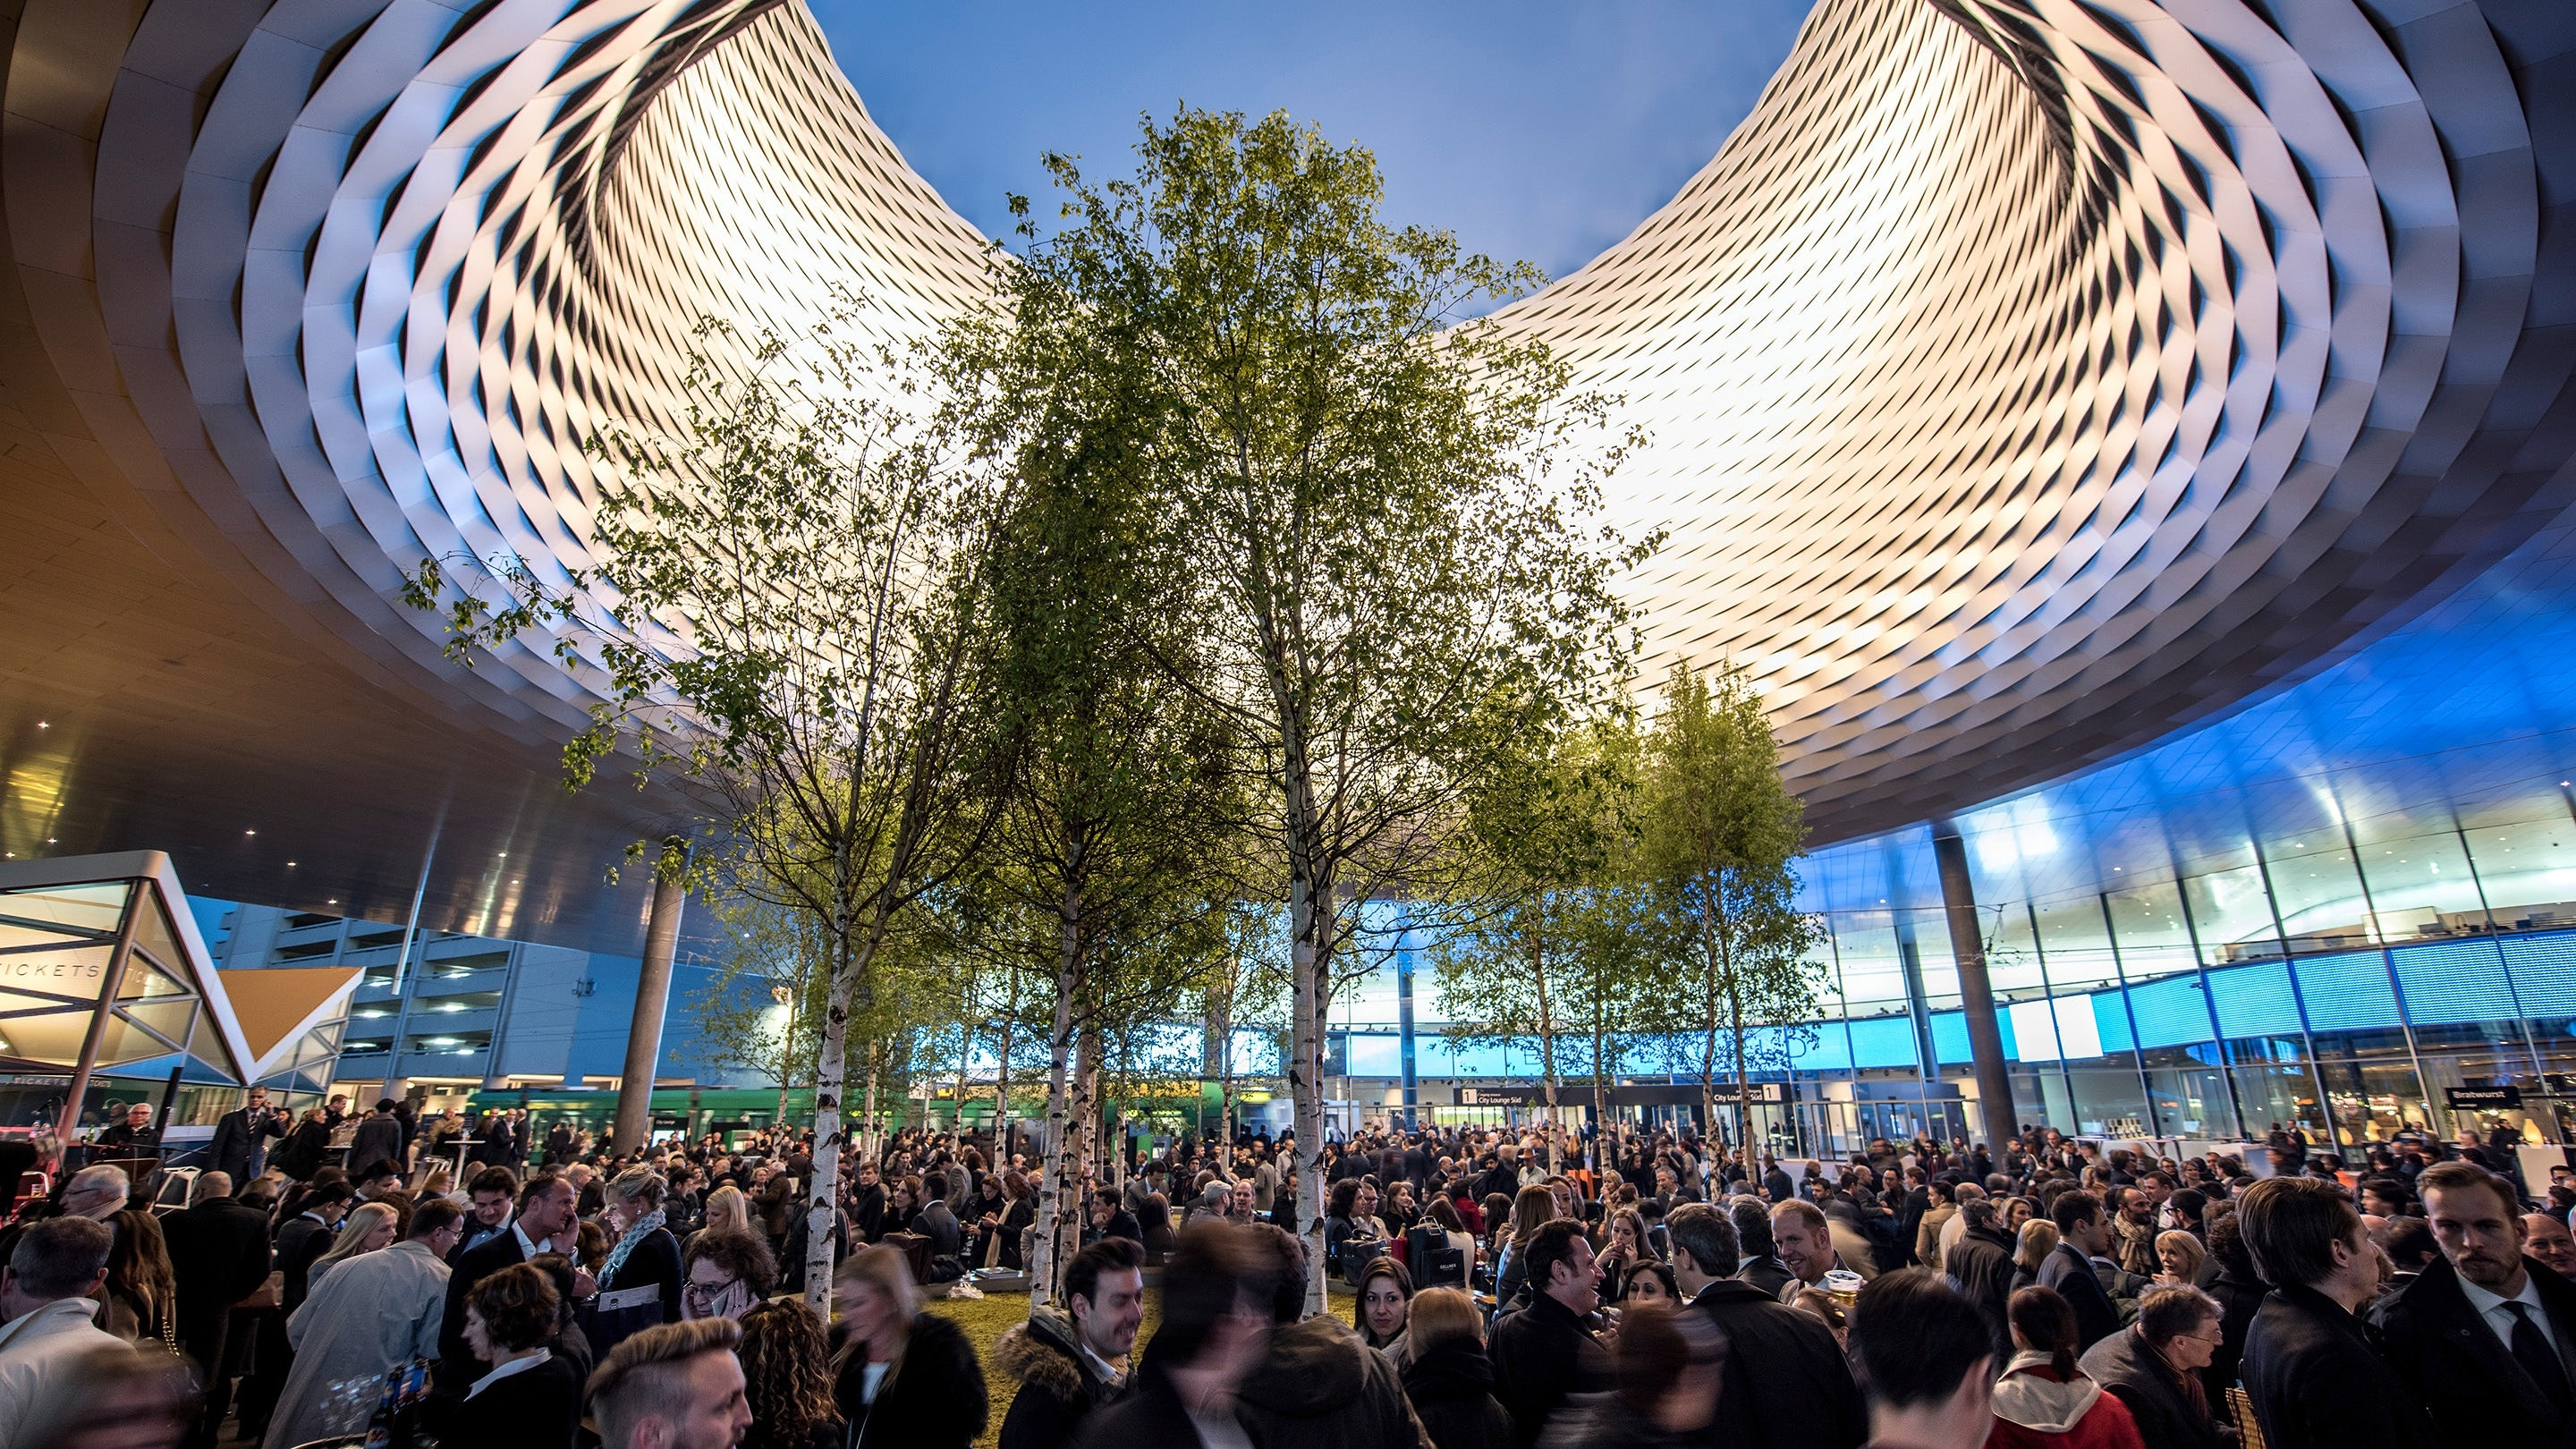 Business News: Head of Baselworld's Parent Company Is Out Amid Swatch Group Departure Baselworld 2015 Outside View